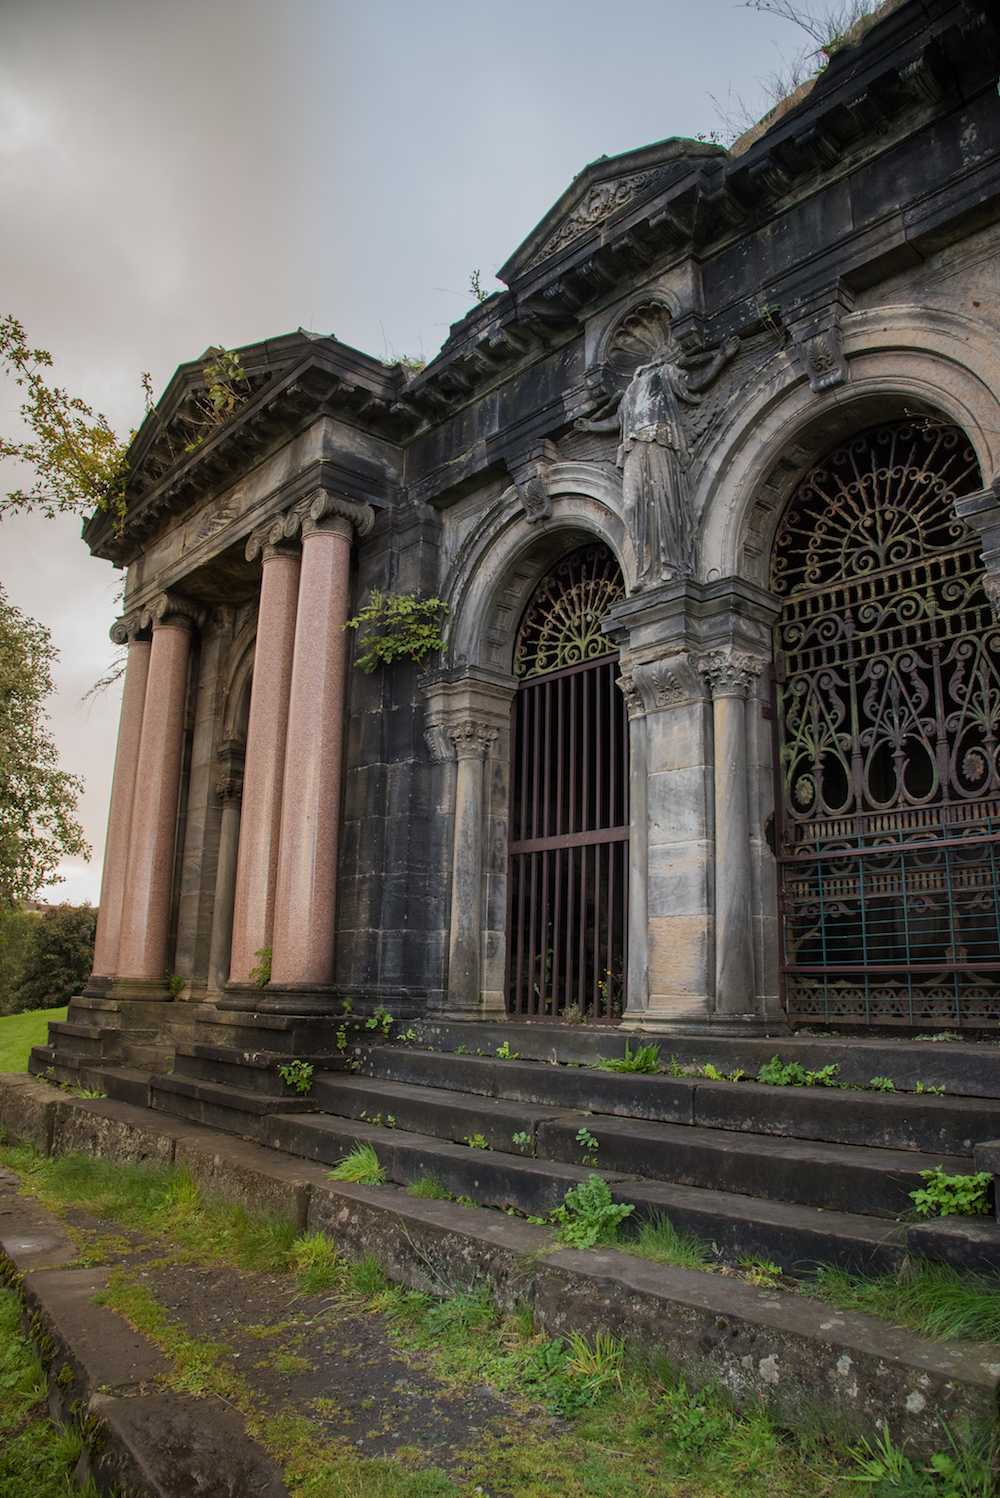 necropolis-glasgow-cemetery-historic-church-tombstones-scotland-buddha-drinks-fanta-mausoleum-jenny-adams-photographer-writer-travel-europe